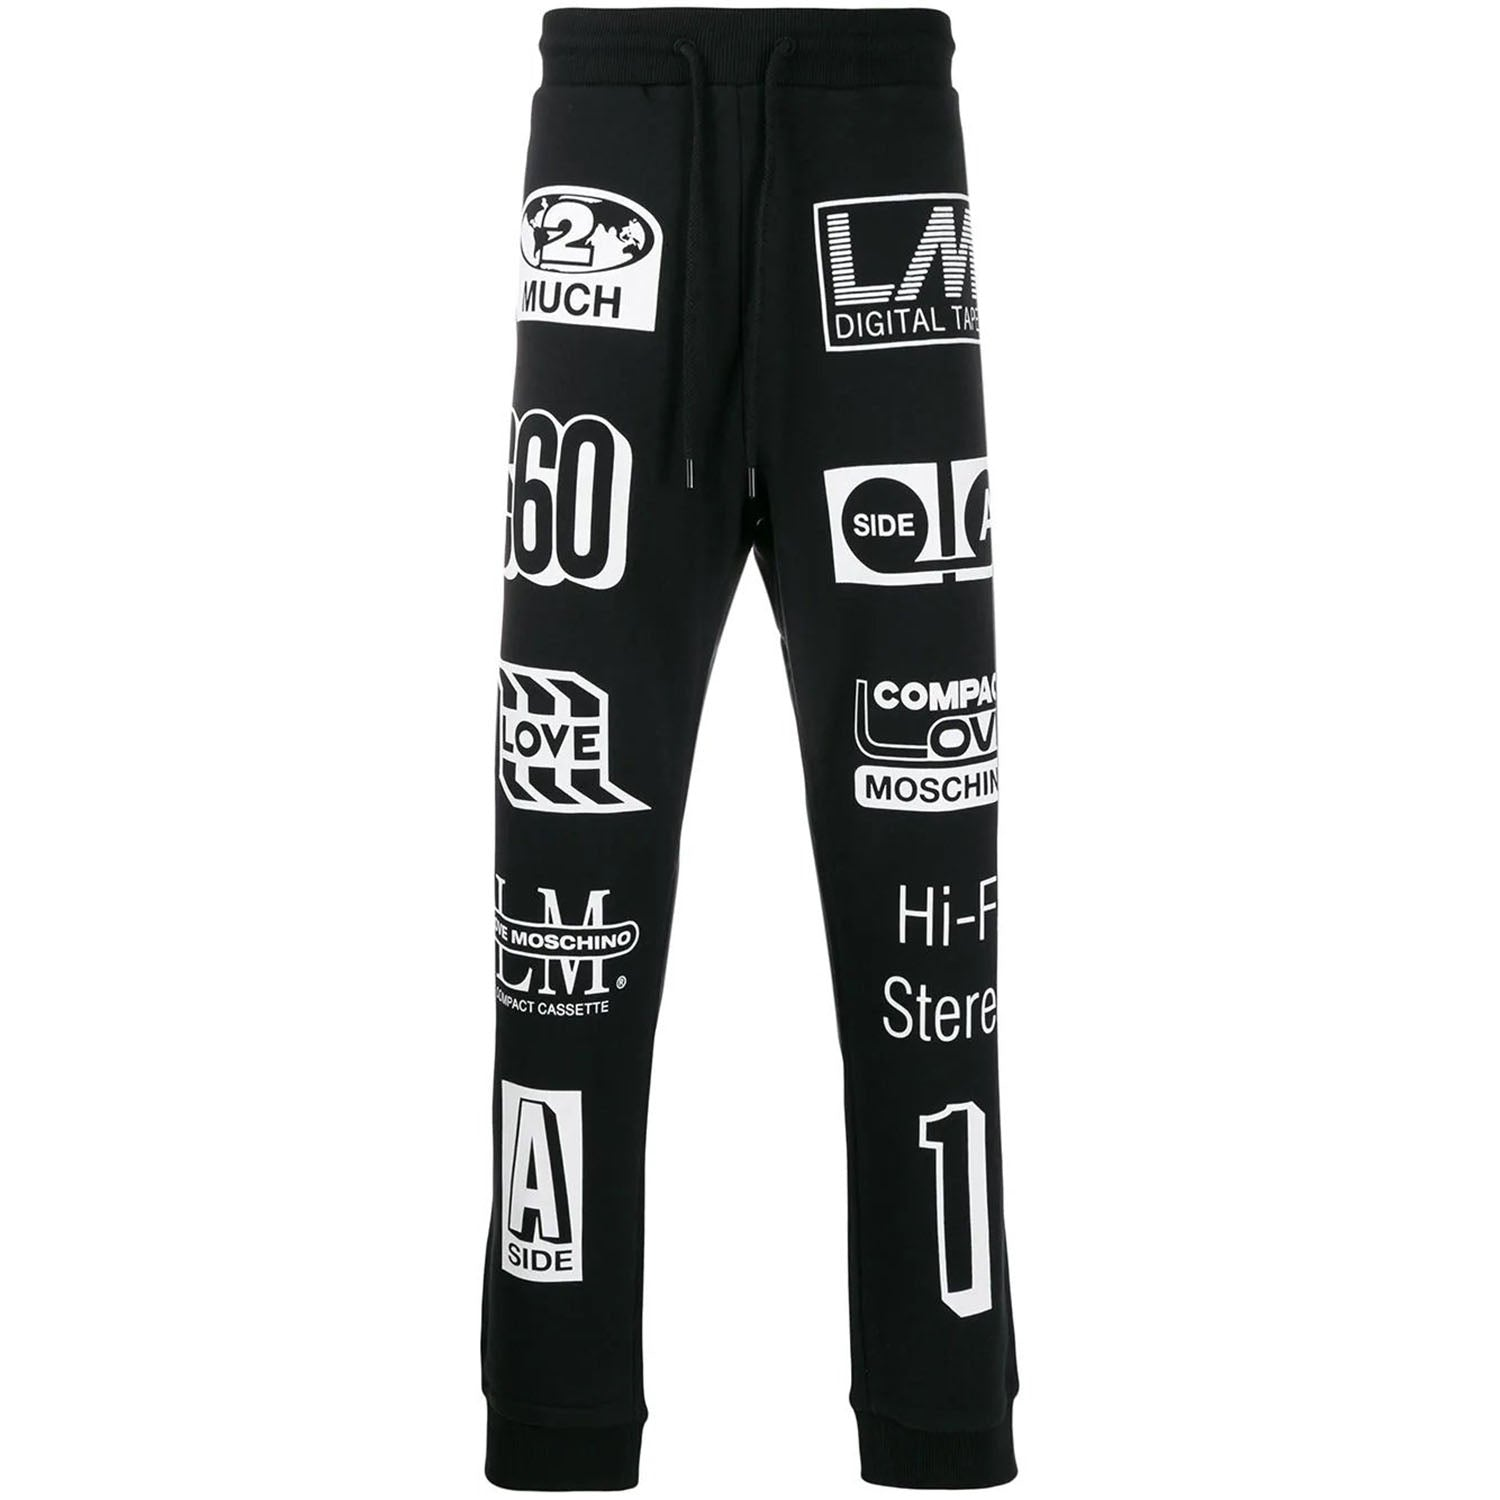 Love Moschino Digital Sound Joggers